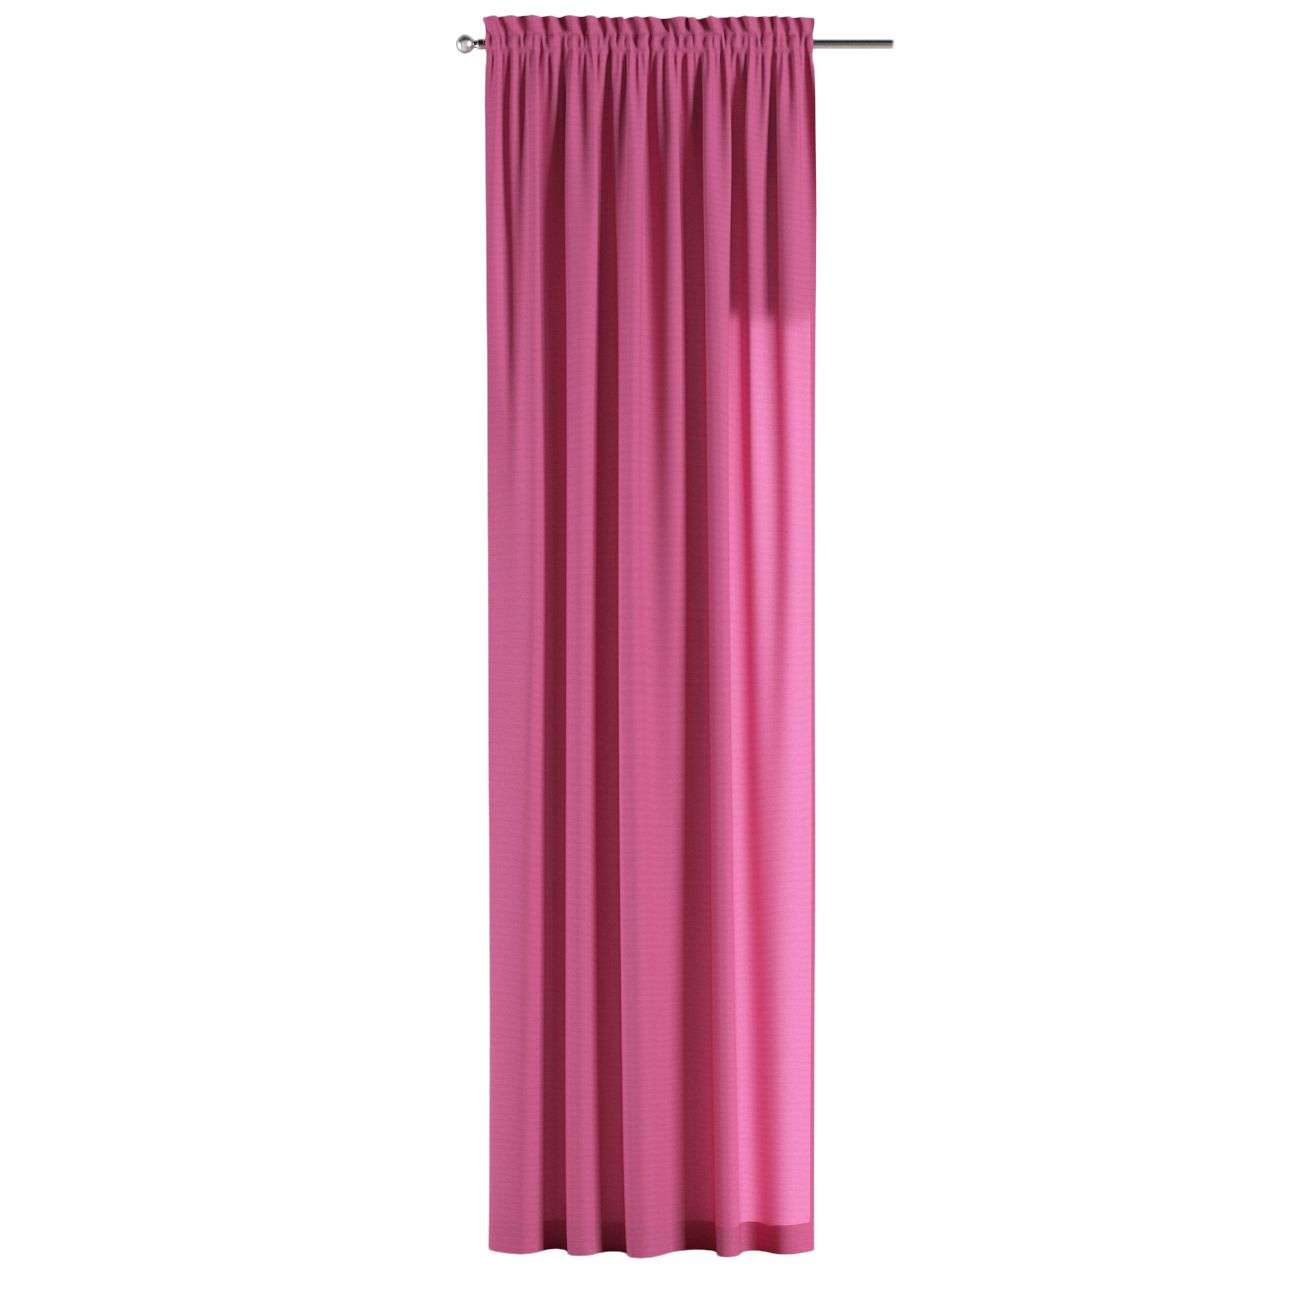 Slot and frill curtains in collection Jupiter, fabric: 127-24